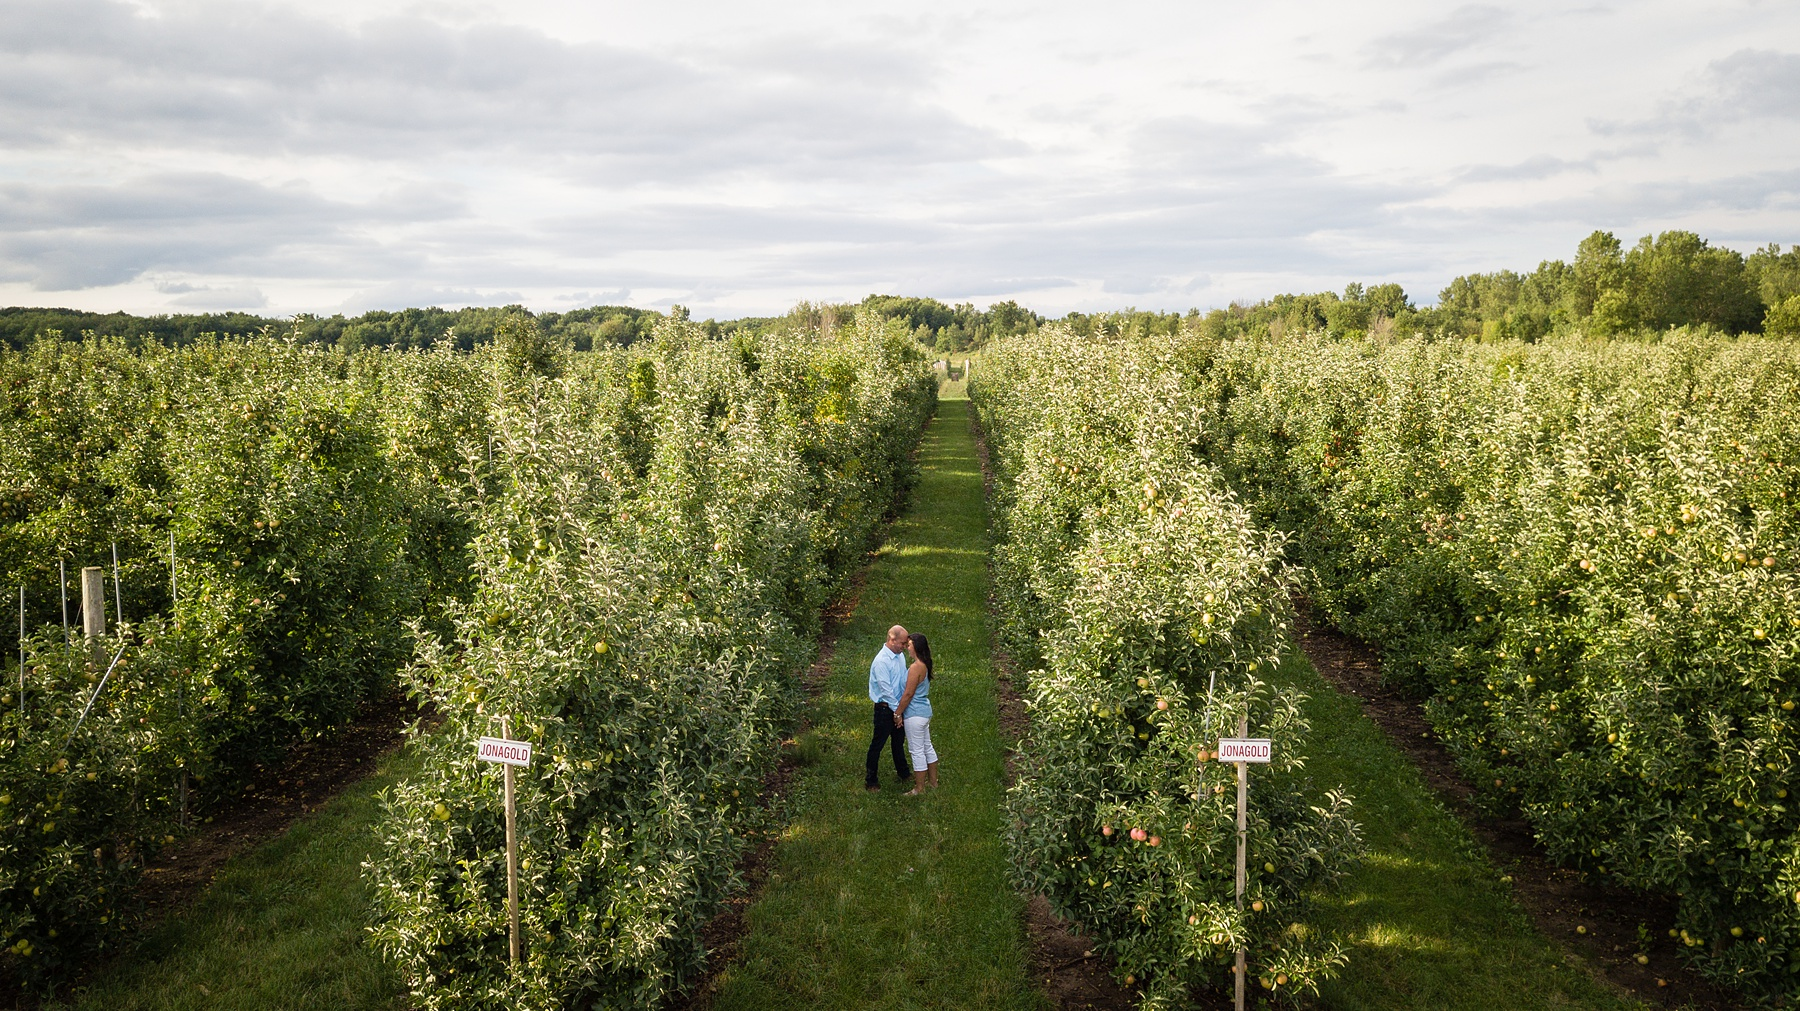 Brandon_Shafer_Photography_Danielle_Matt_Apple_Orchard_Engagement_Photos_0018.jpg